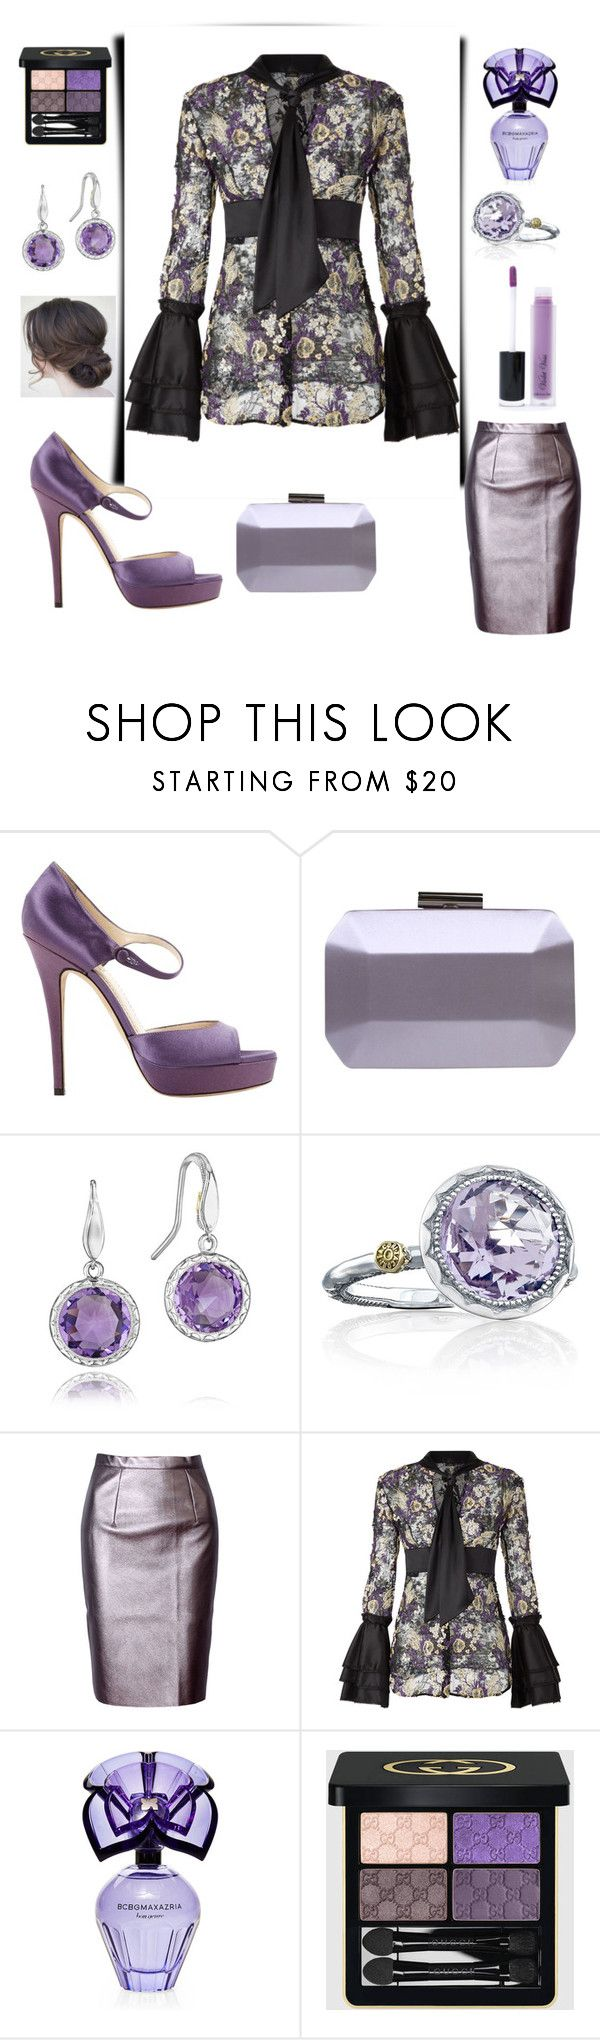 """""""Looking Lovely in Lilac & LaPerla Lace💜"""" by mdfletch ❤ liked on Polyvore featuring Yves Saint Laurent, Carvela, Tacori, WithChic, La Perla, BCBGMAXAZRIA, Gucci, Violet Voss and lilac"""